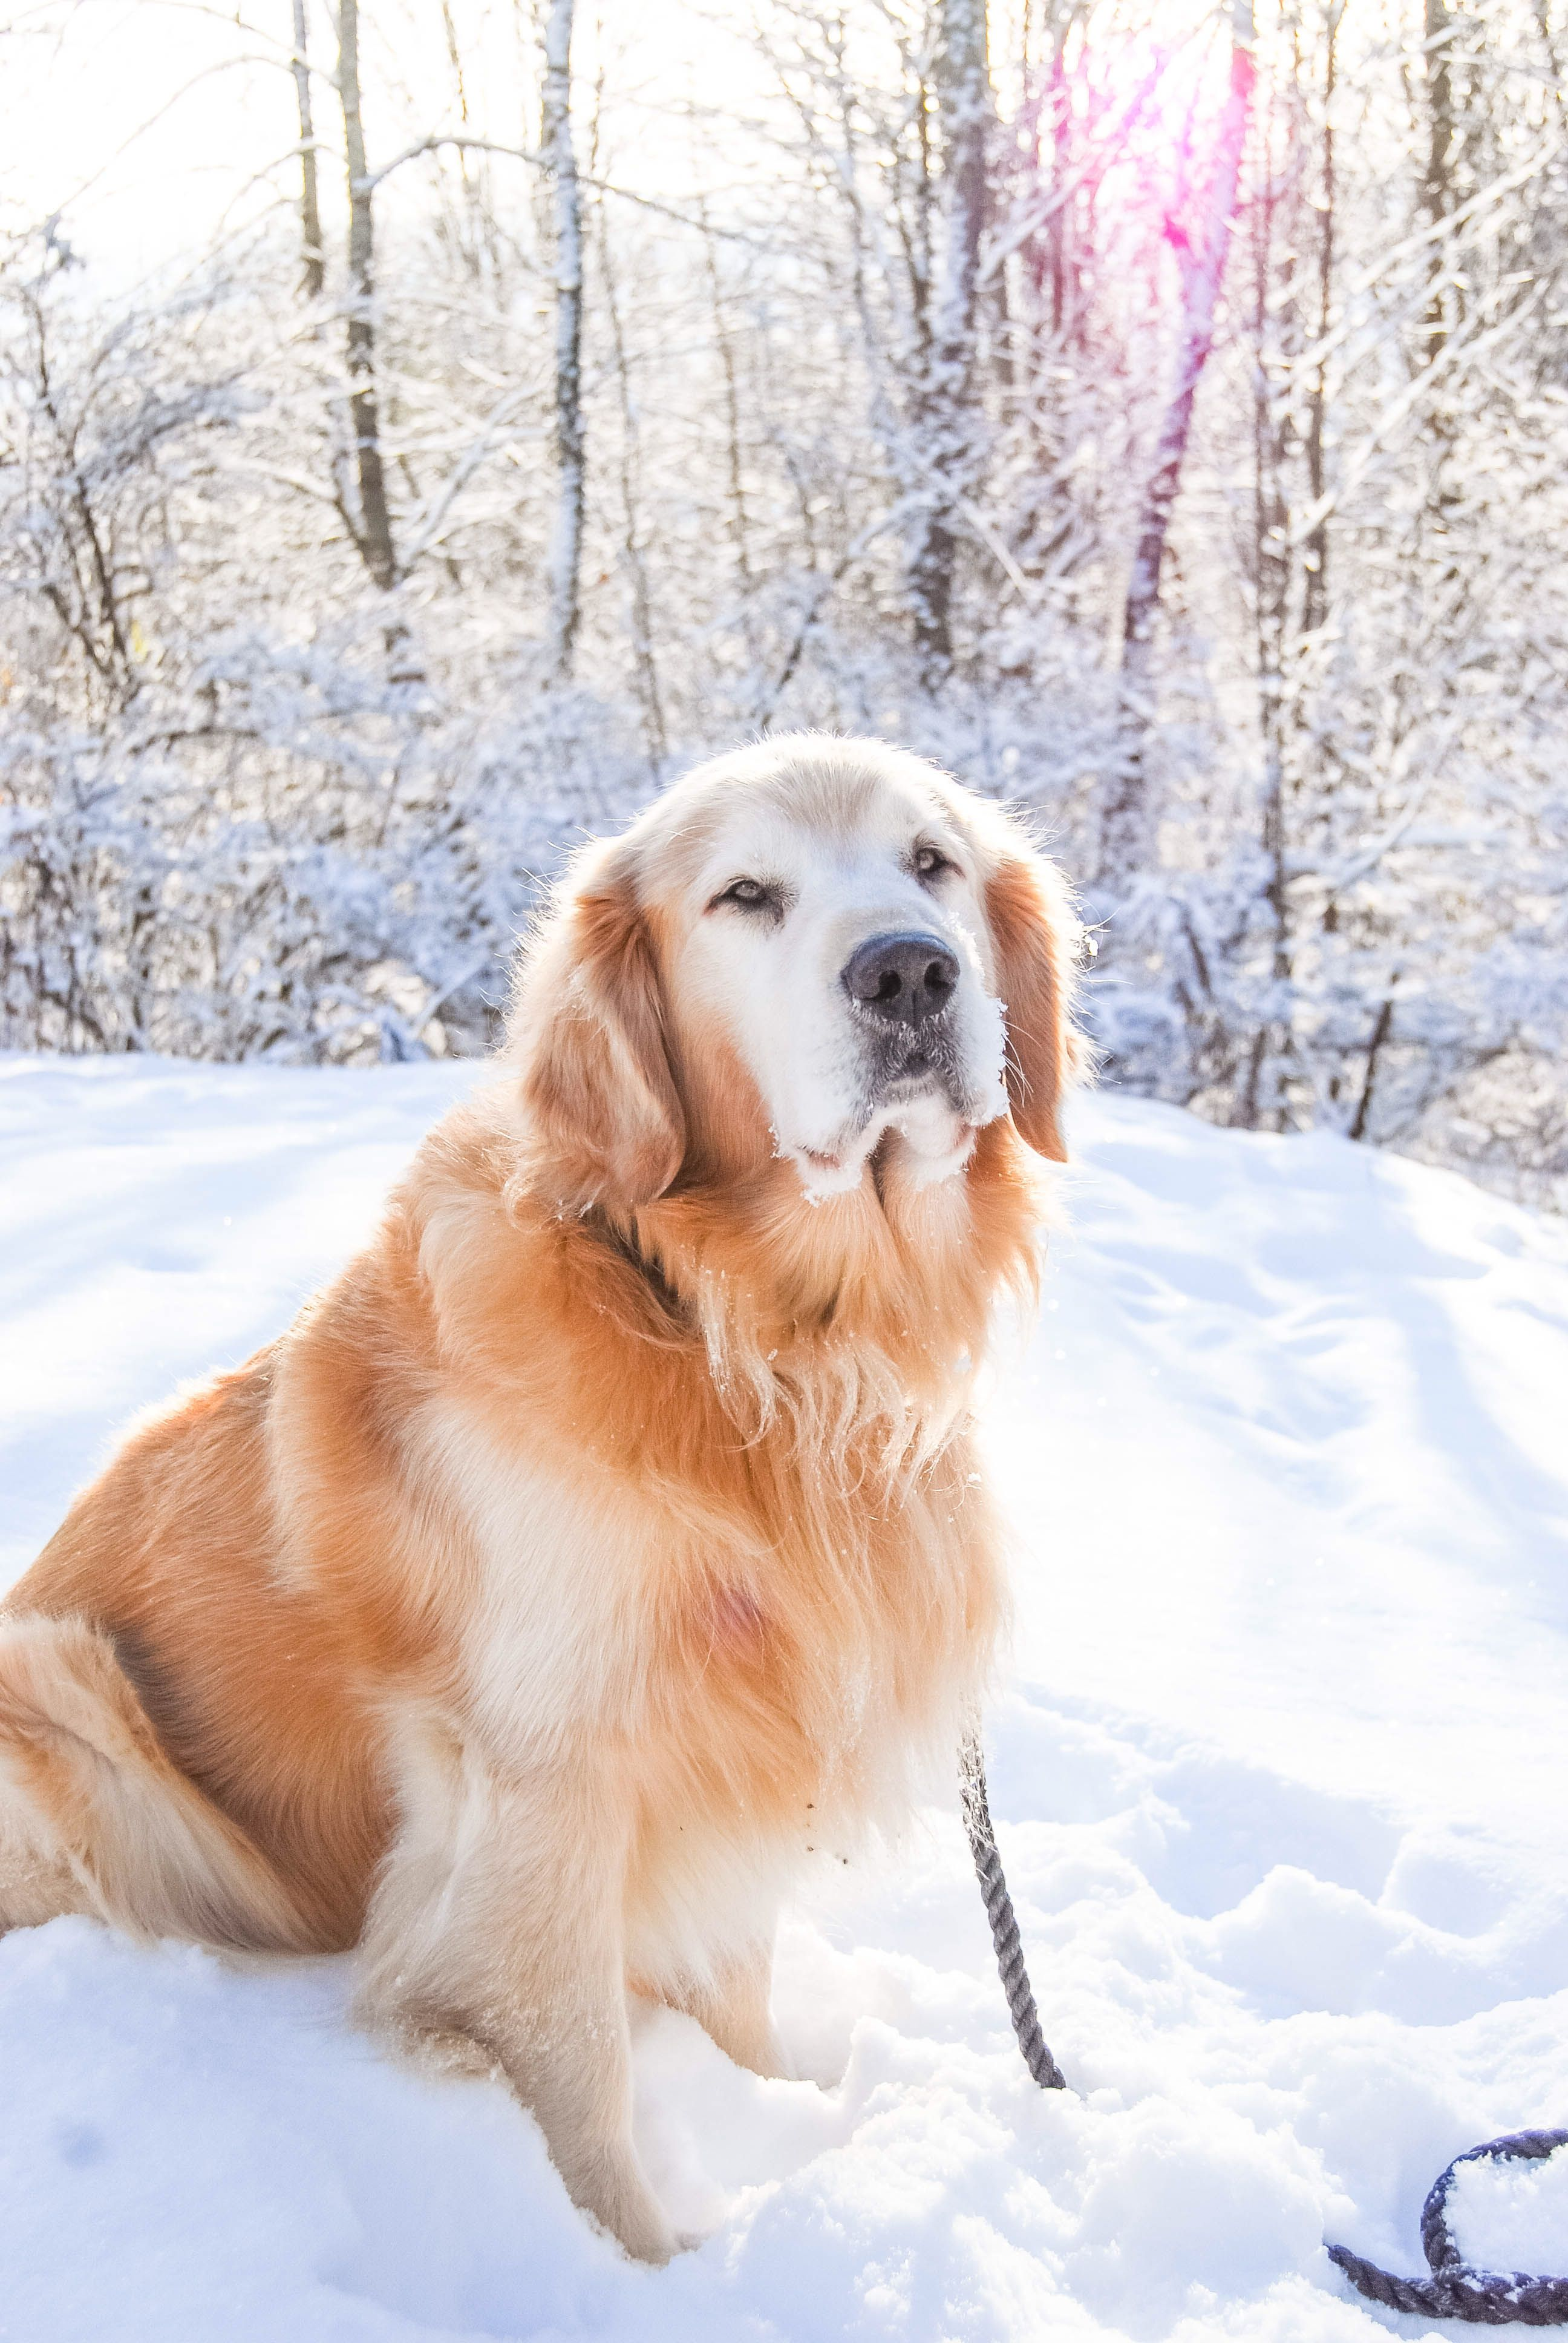 Pin By Jessica Sazhnyev On Nature Old Golden Retriever Dogs